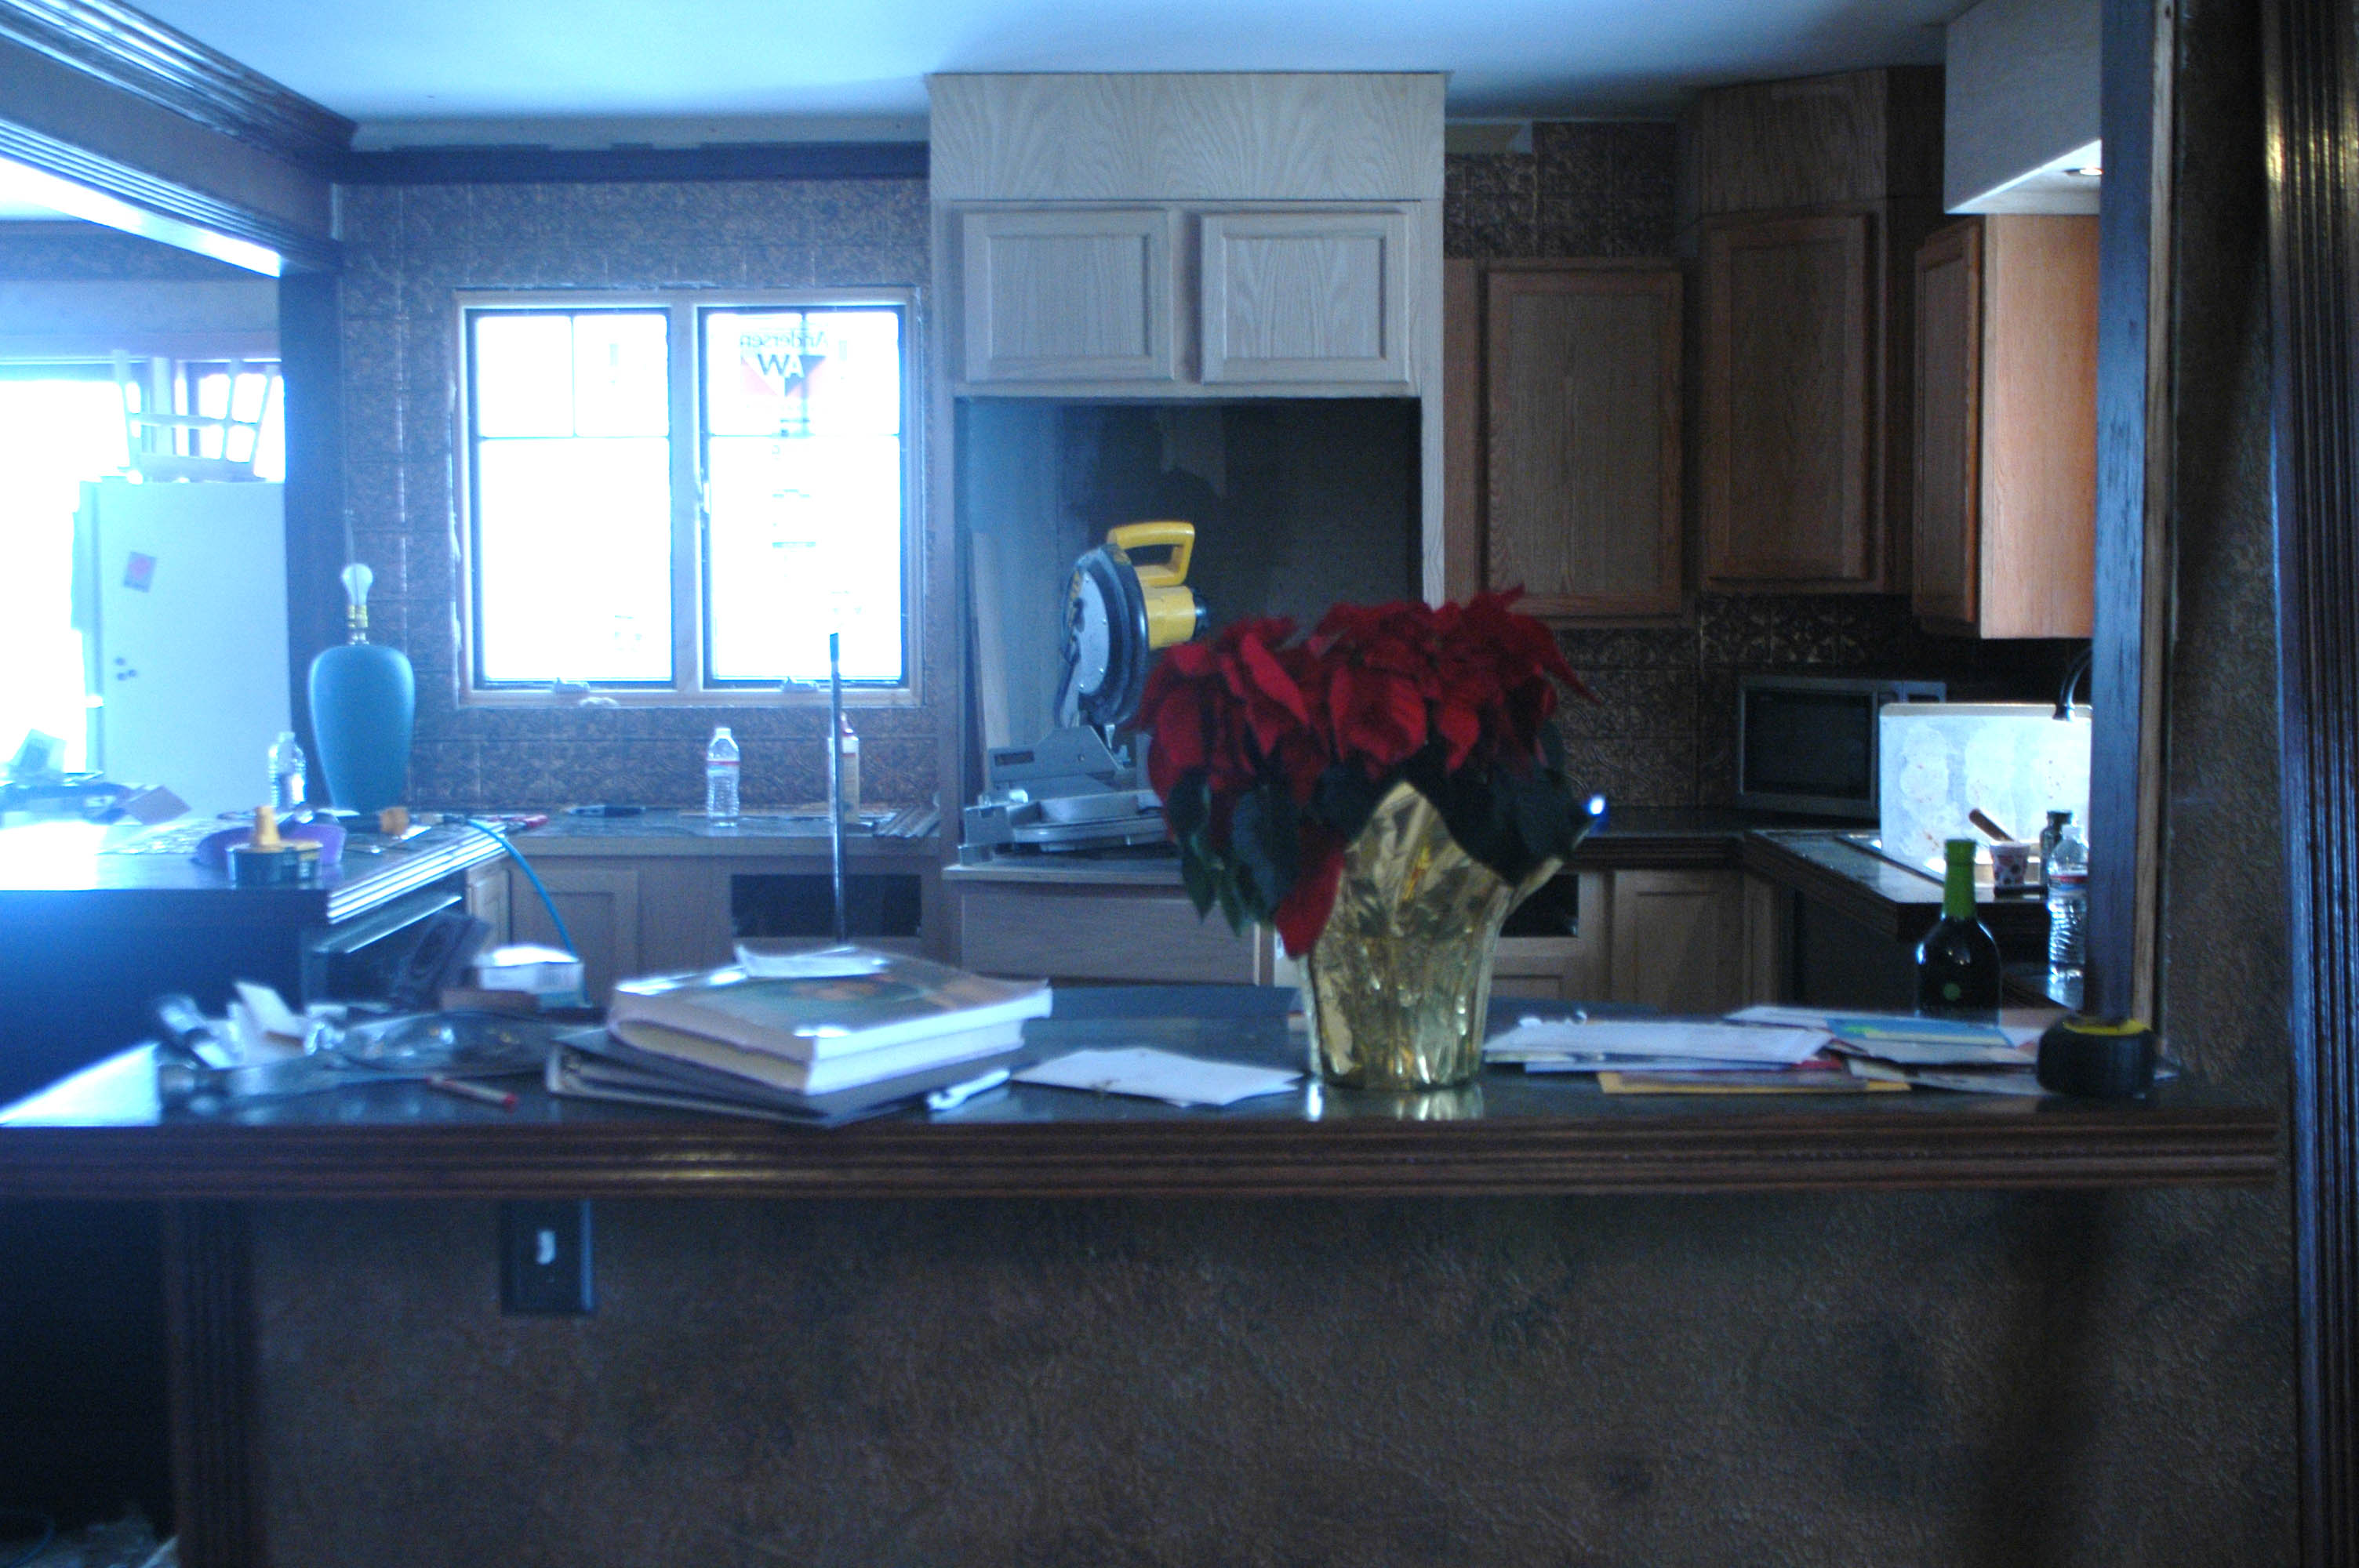 12-09-09-Kitchen-6.jpg